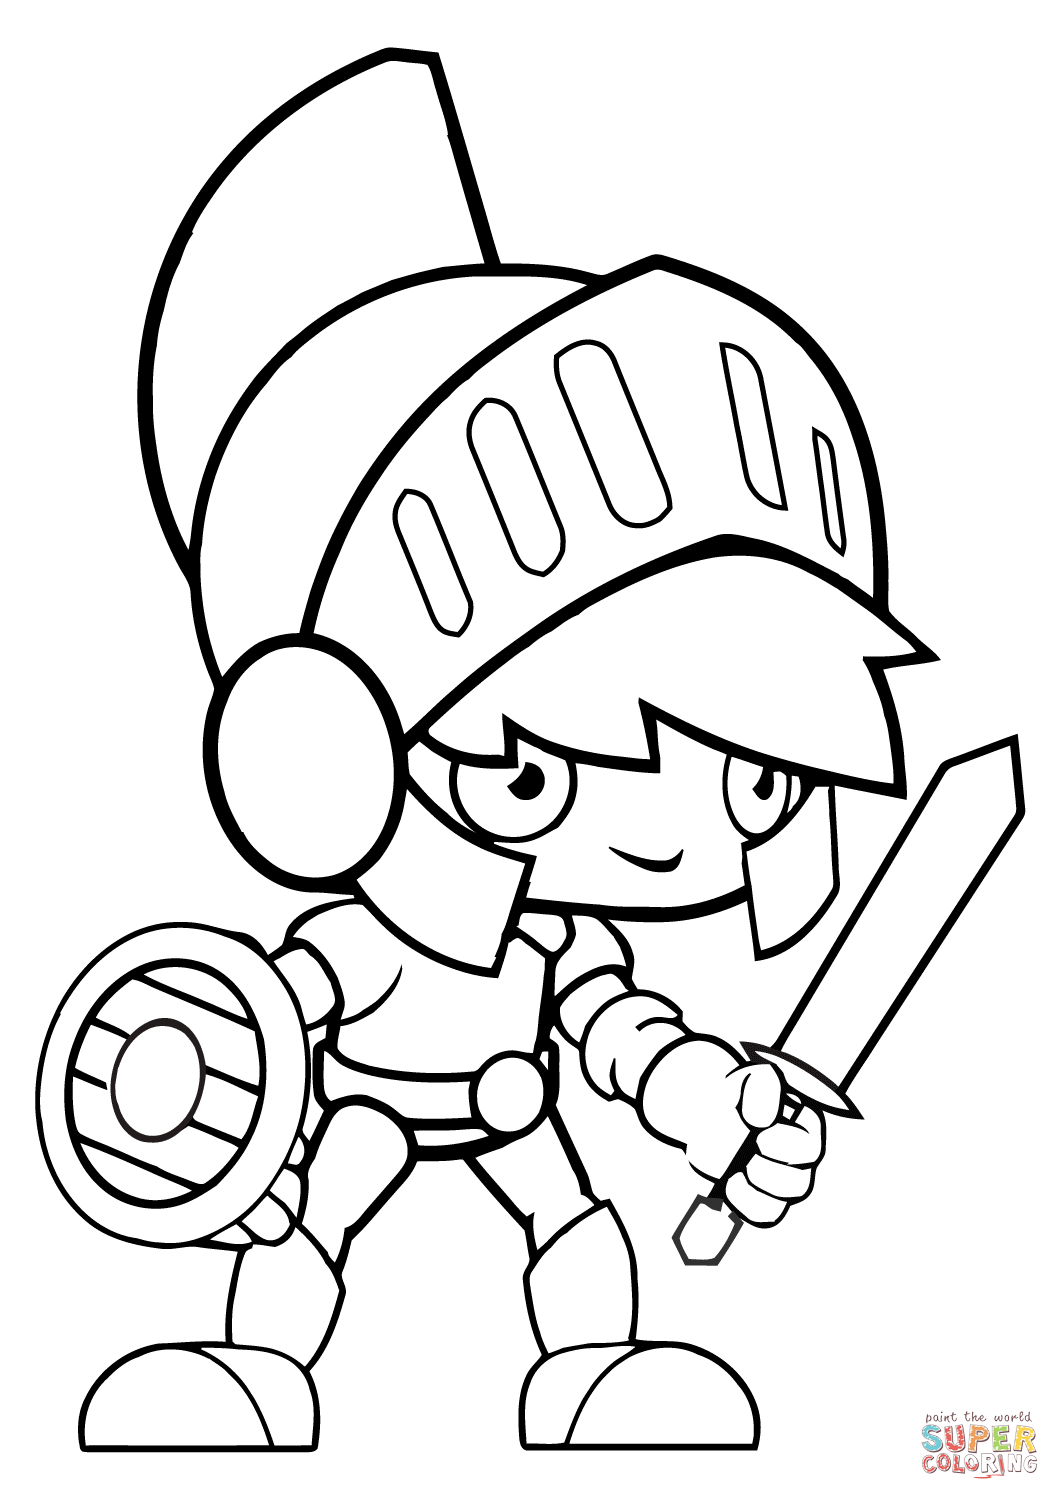 free coloring pages download cartoon roman soldier coloring page free printable coloring pages of roman